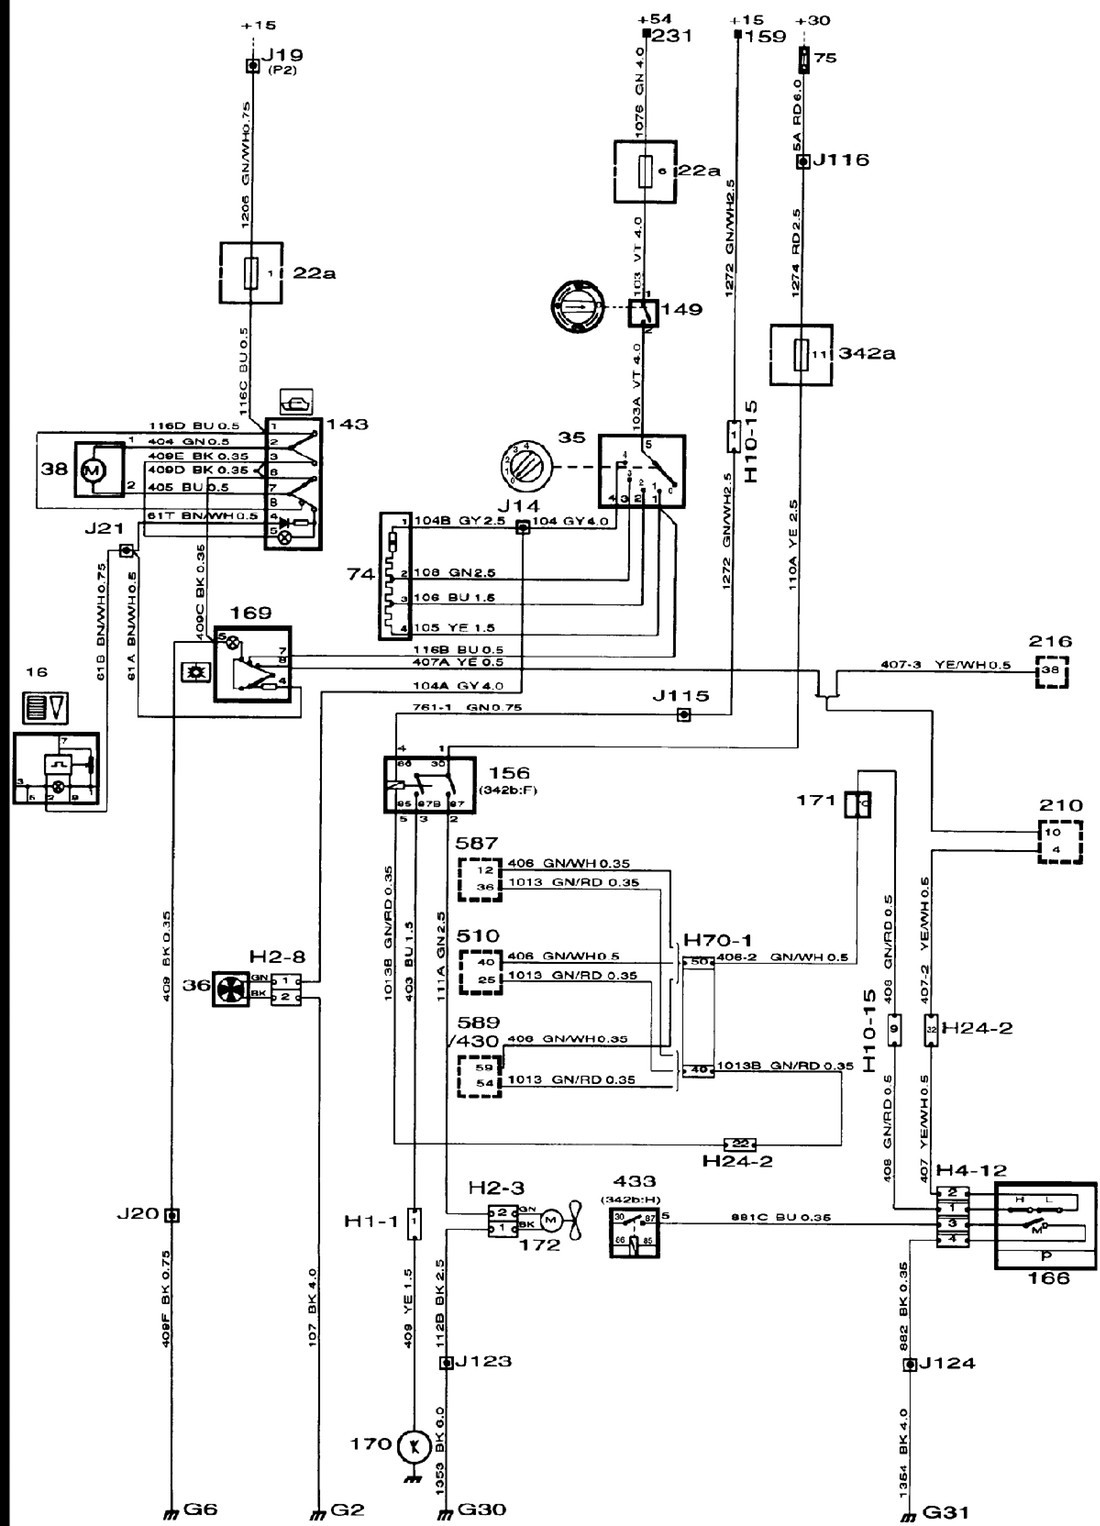 Diagram size Wiring Diagram For Acc Here You Go i wire electrical